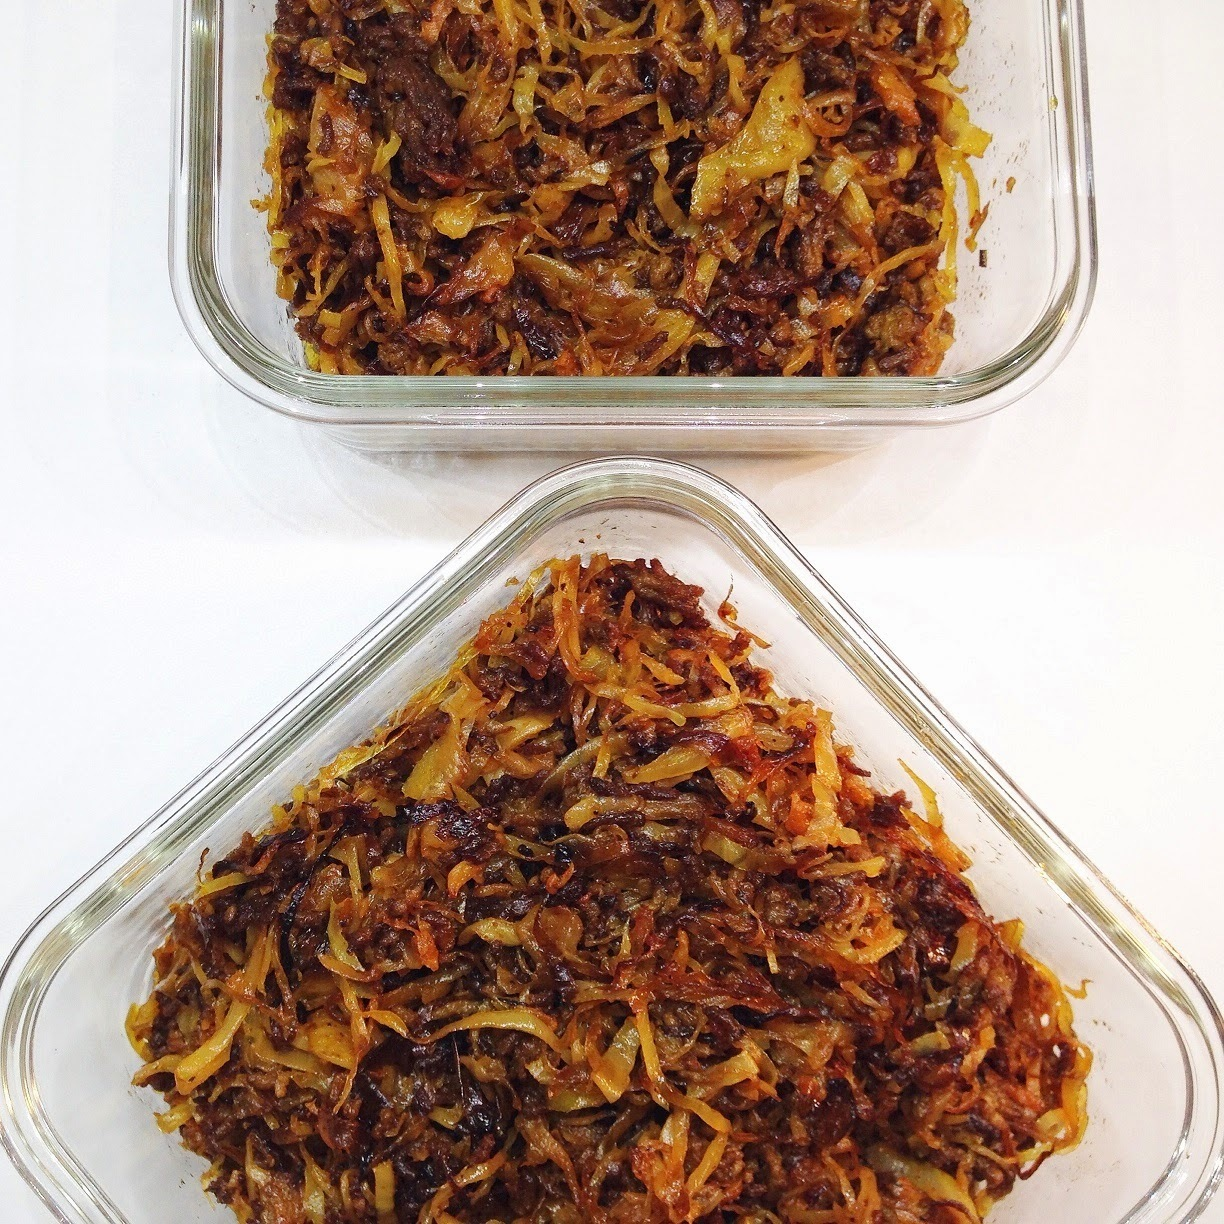 Caramelized cabbage & ground beef / Karameliserad vitkål & köttfärs